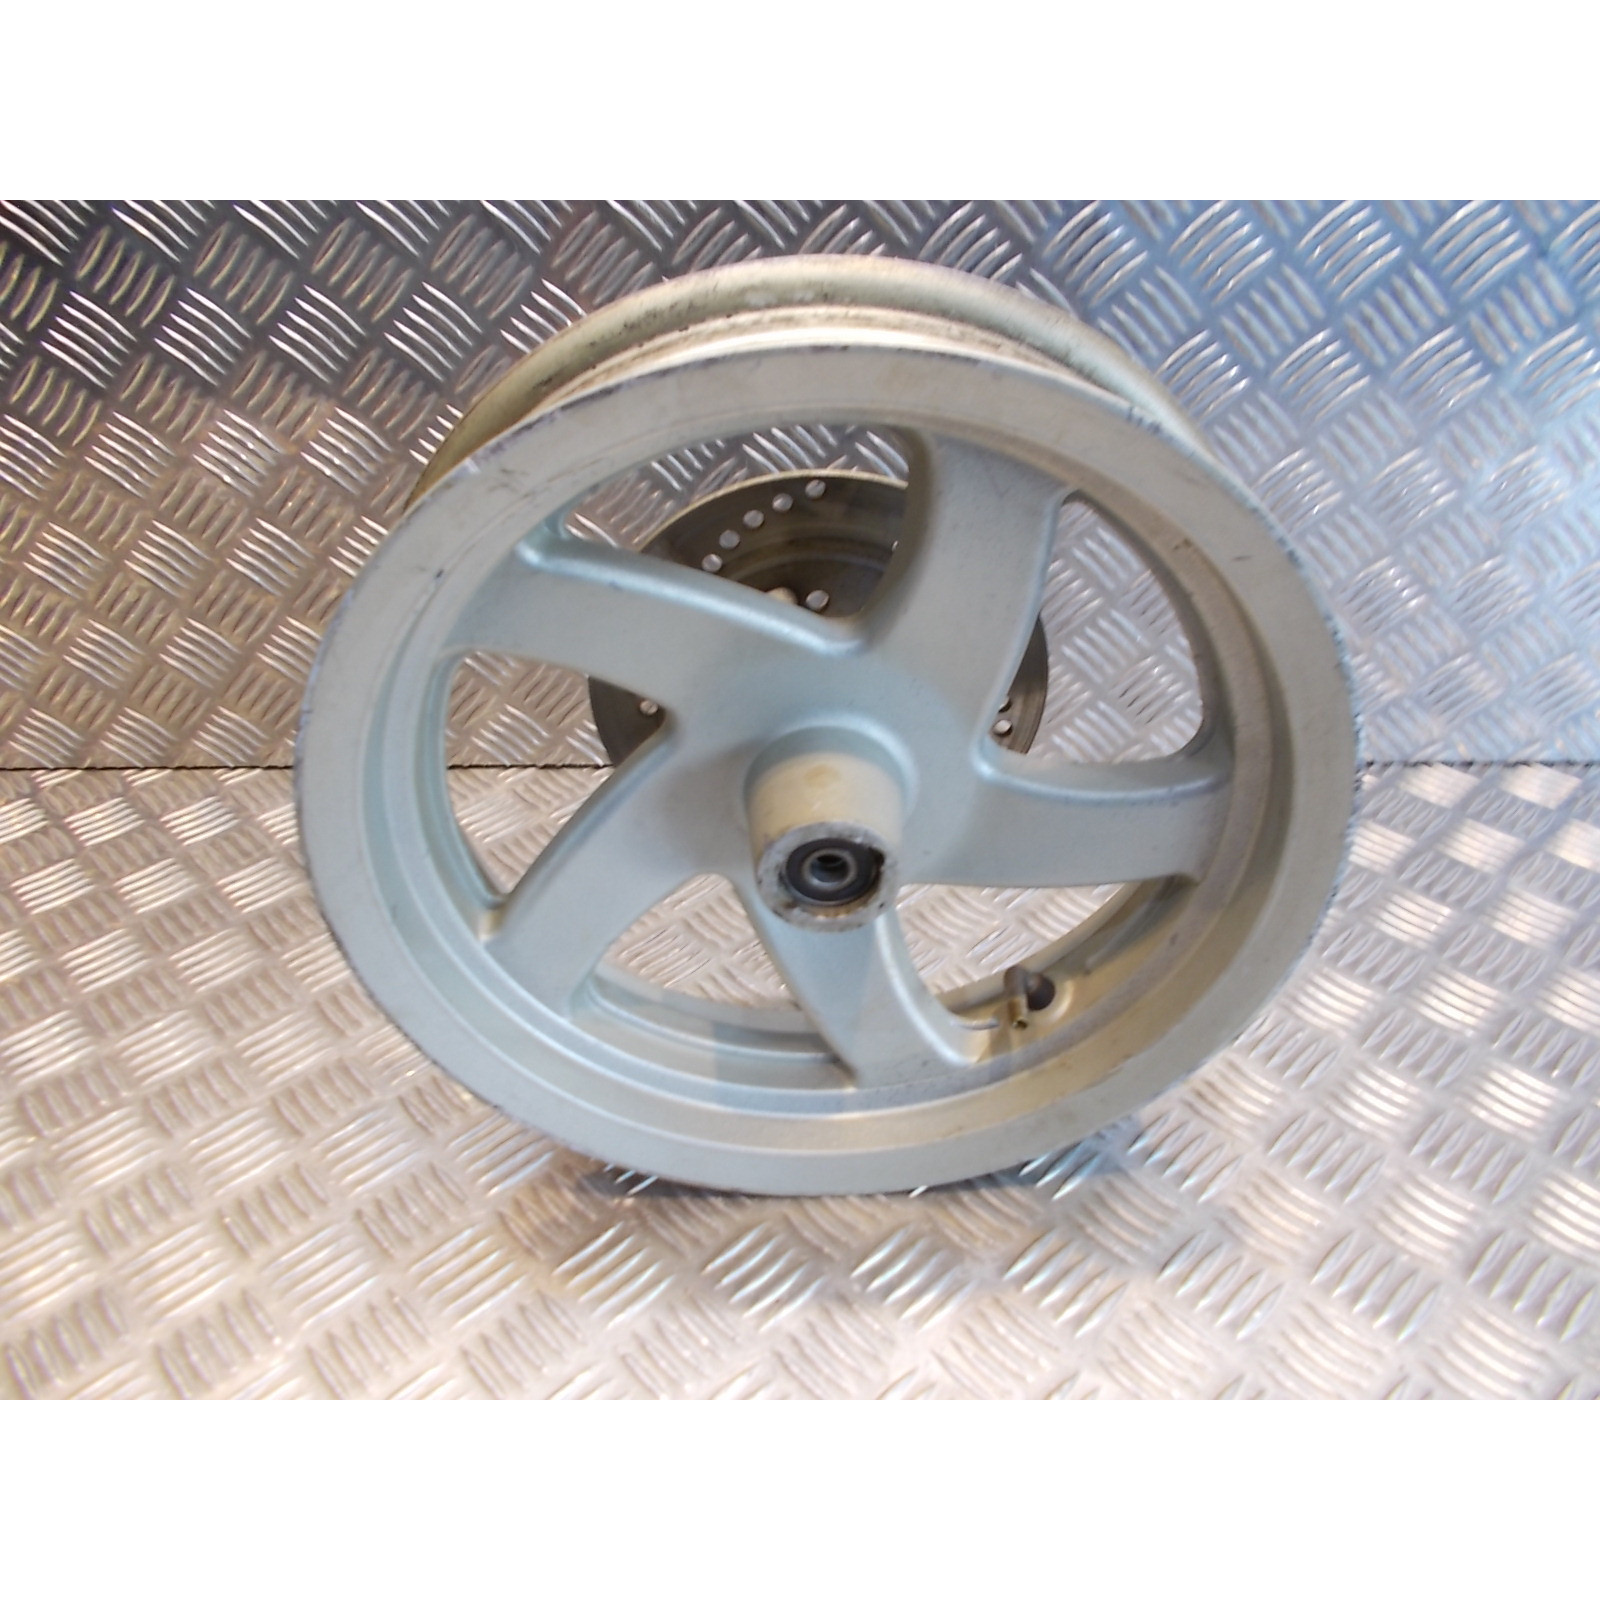 jante roue arriere disque frein 2.75 x 12 scooter chinois 50 125 gy6